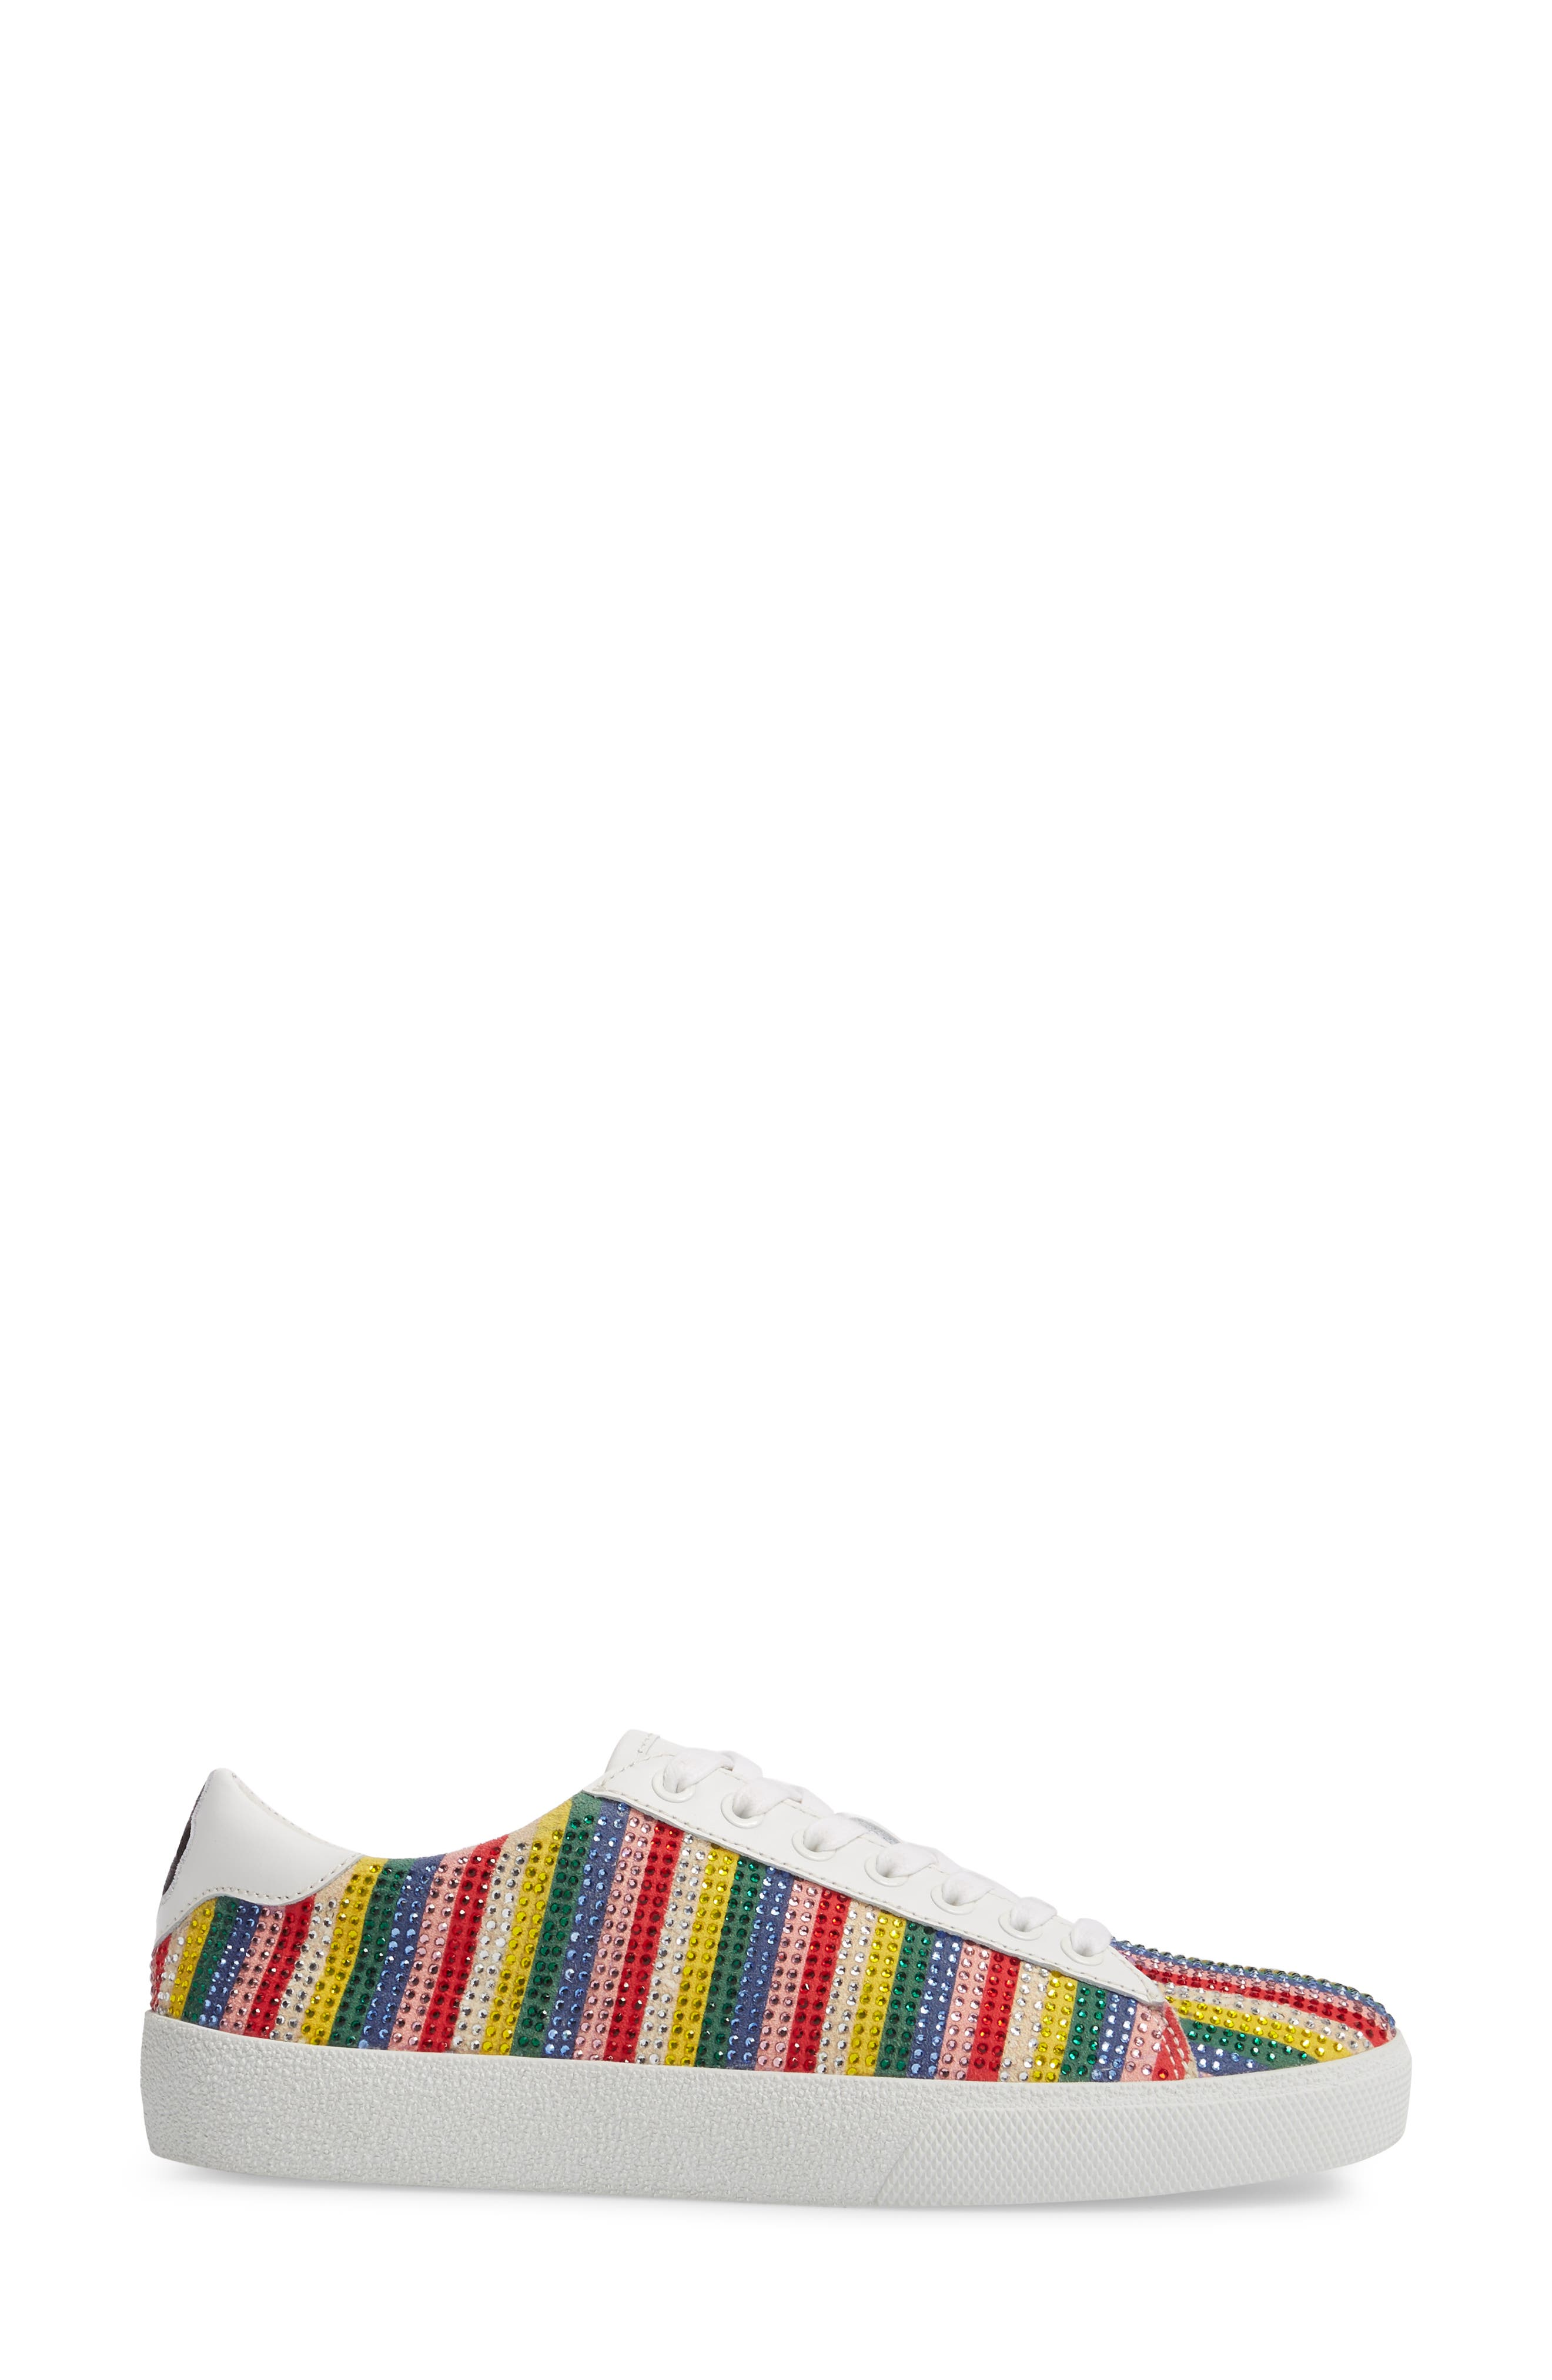 Cassidy Crystal Embellished Sneaker,                             Alternate thumbnail 3, color,                             Multi